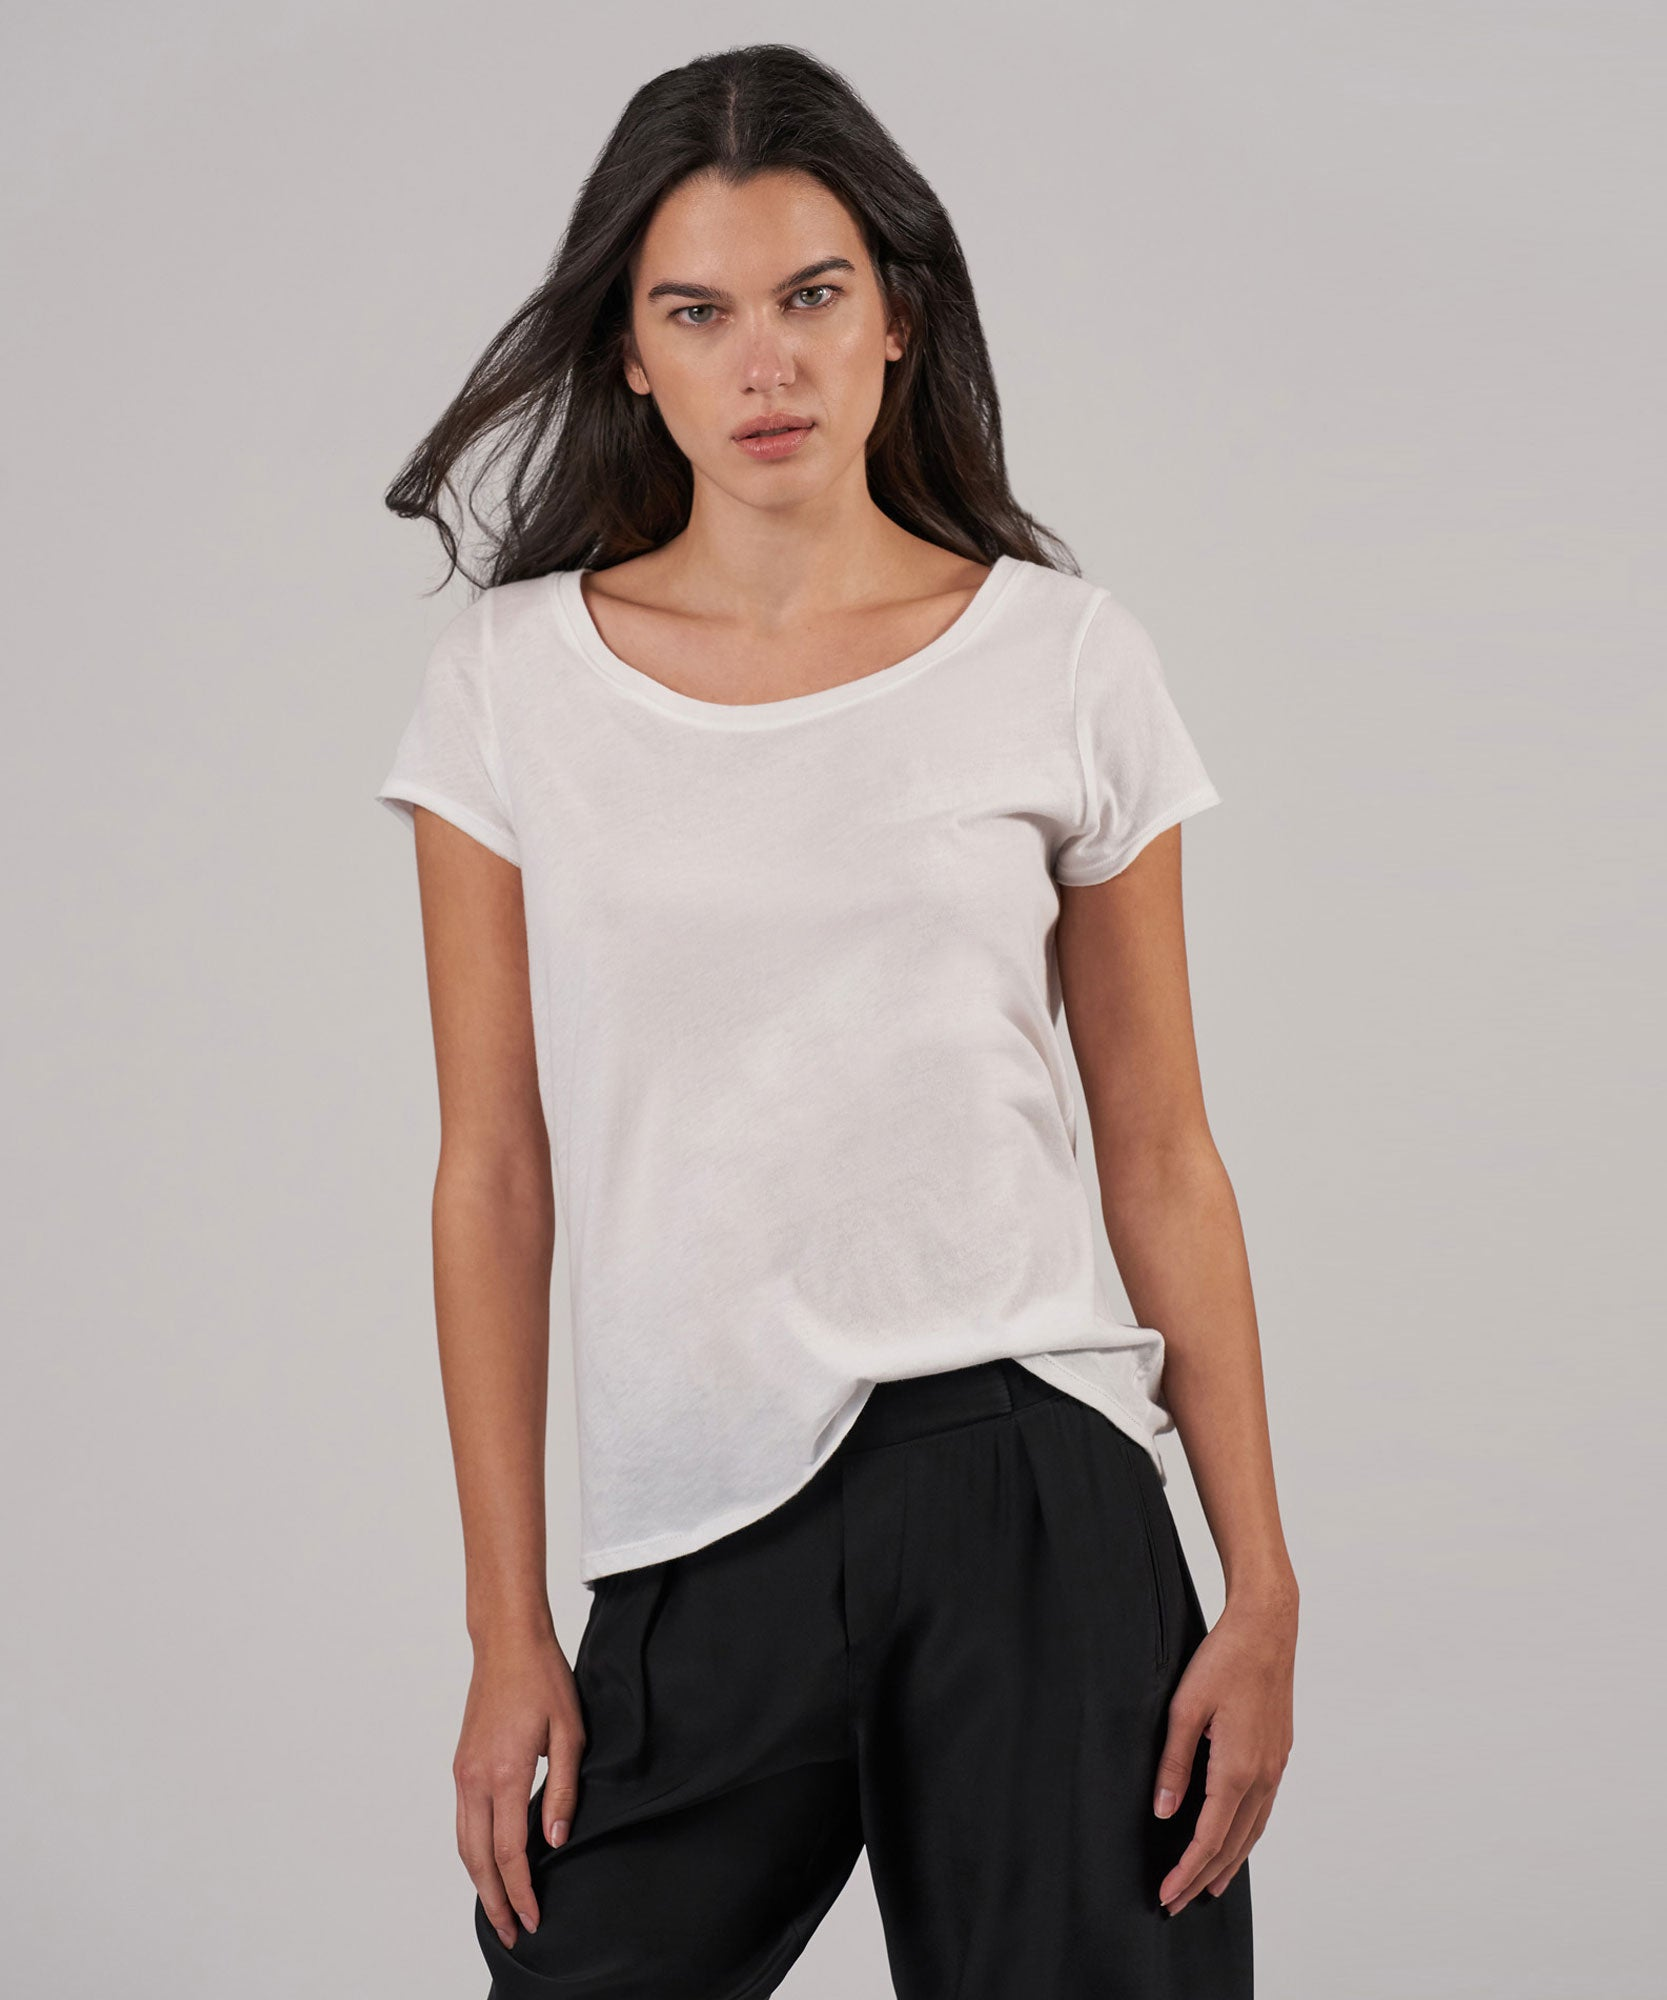 White Vintage Jersey Wide Crew Neck Tee - Women's Luxe Top by ATM Anthony Thomas Melillo